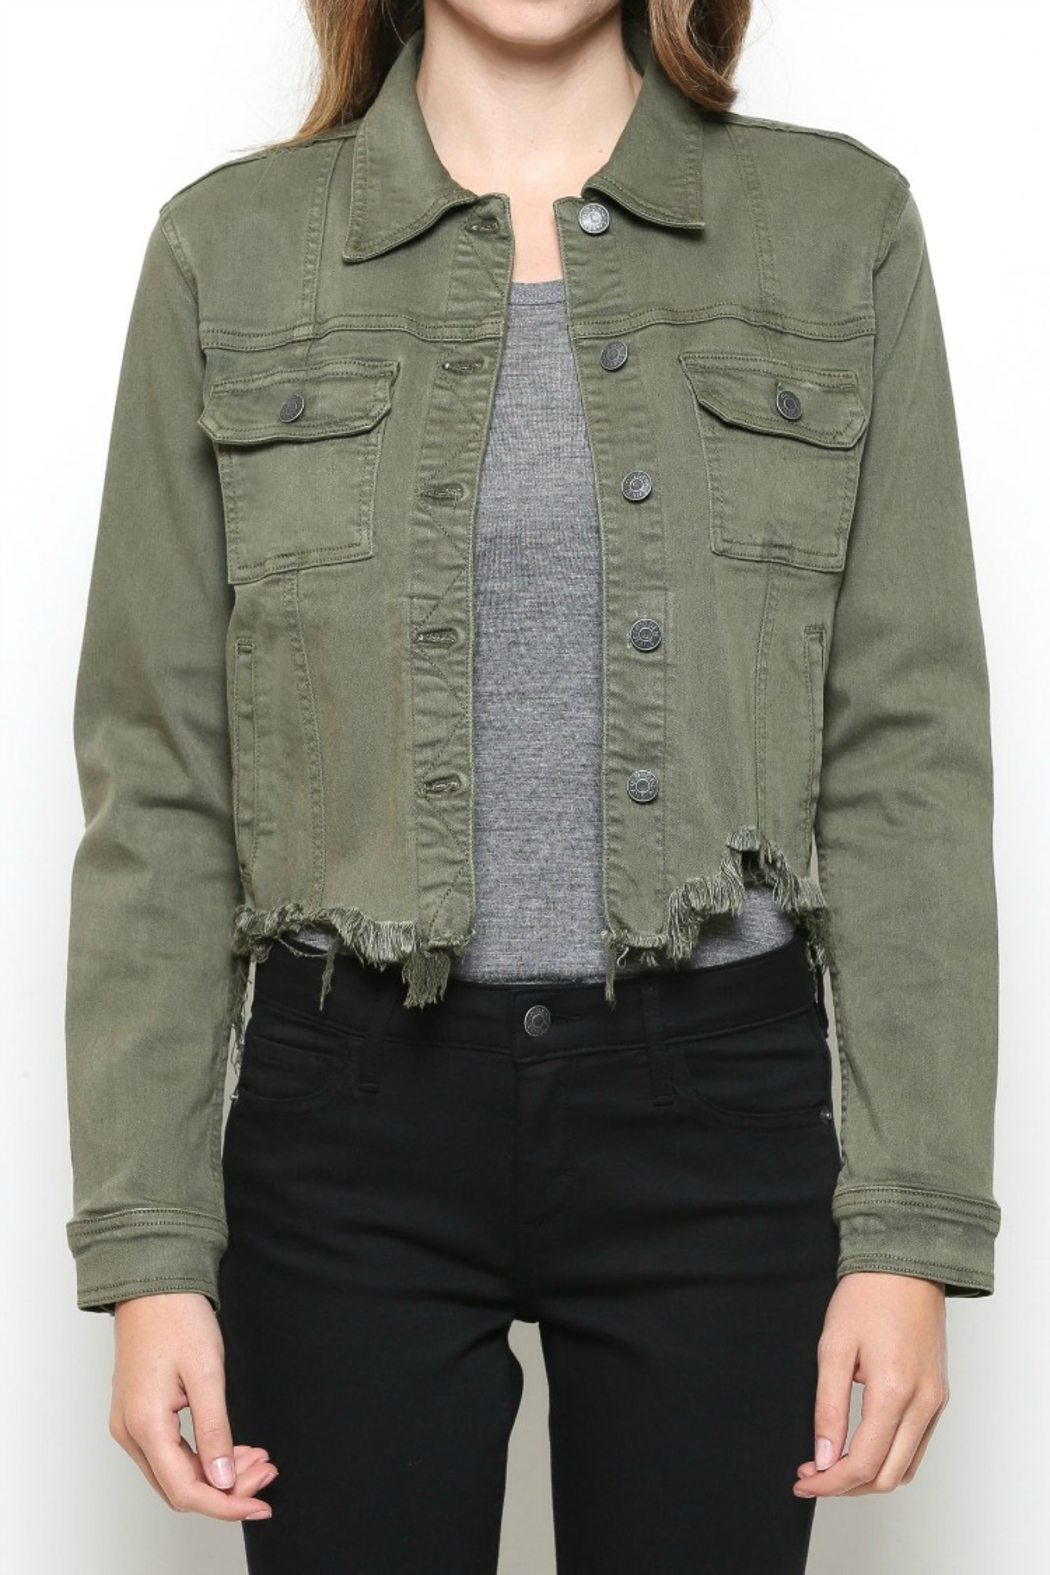 Hidden Jeans DISTRESSED & OUT MILITARY JACKET - Side Cropped Image